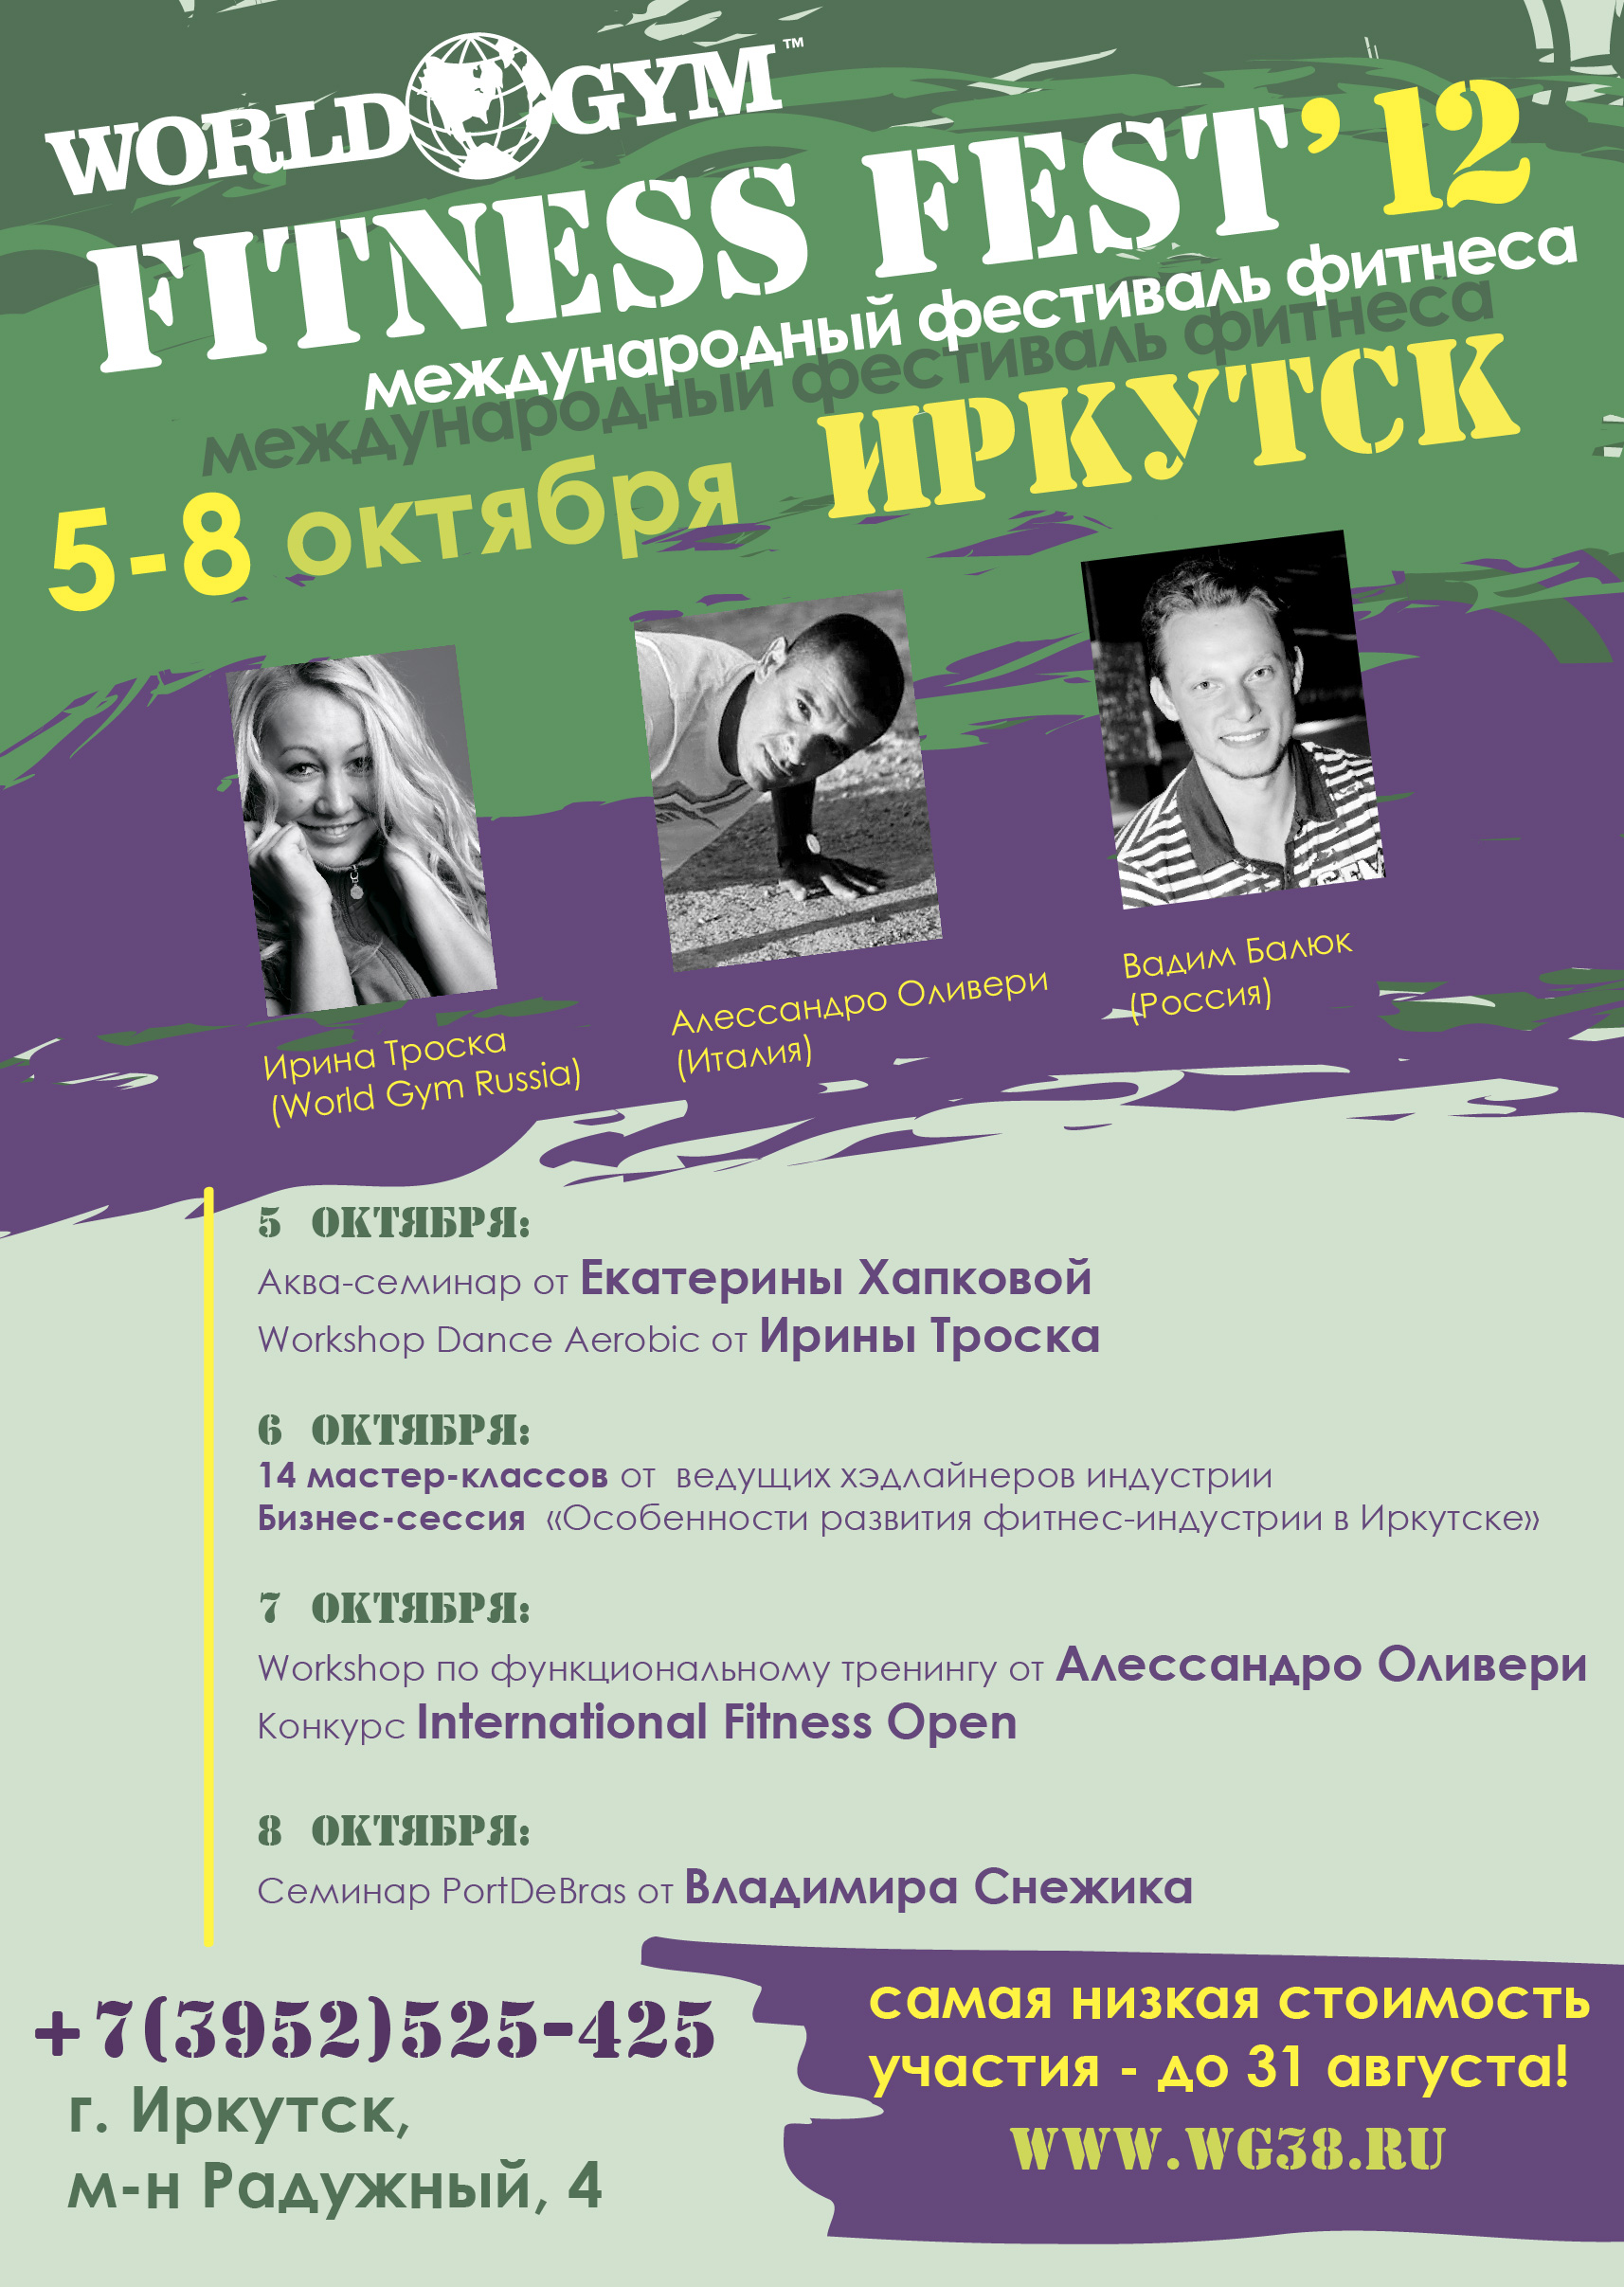 World Gym Fitness Fest'12 - Иркутск!